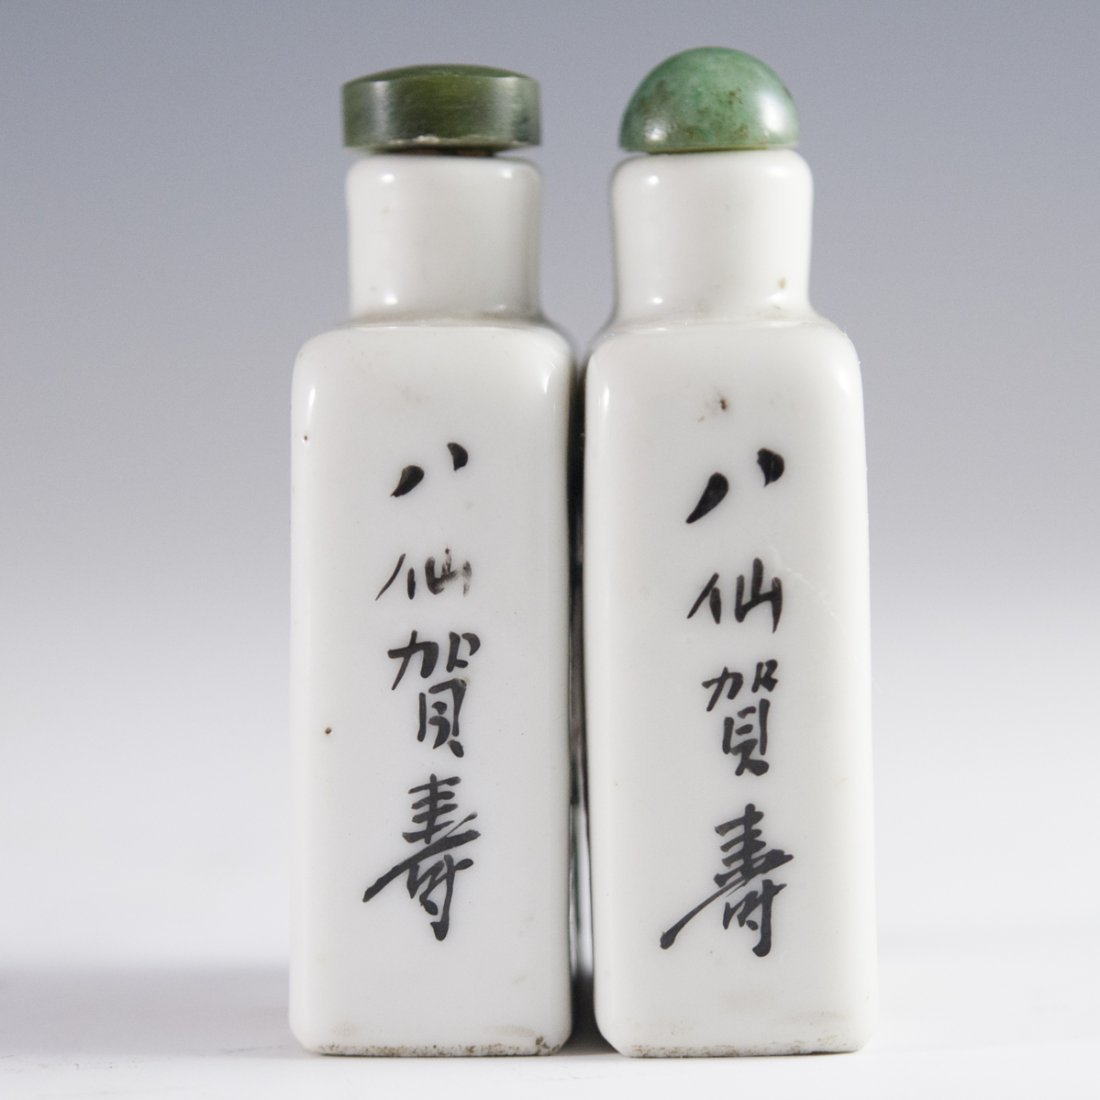 Pair of Antique Chinese Porcelain Snuff Bottles - 2